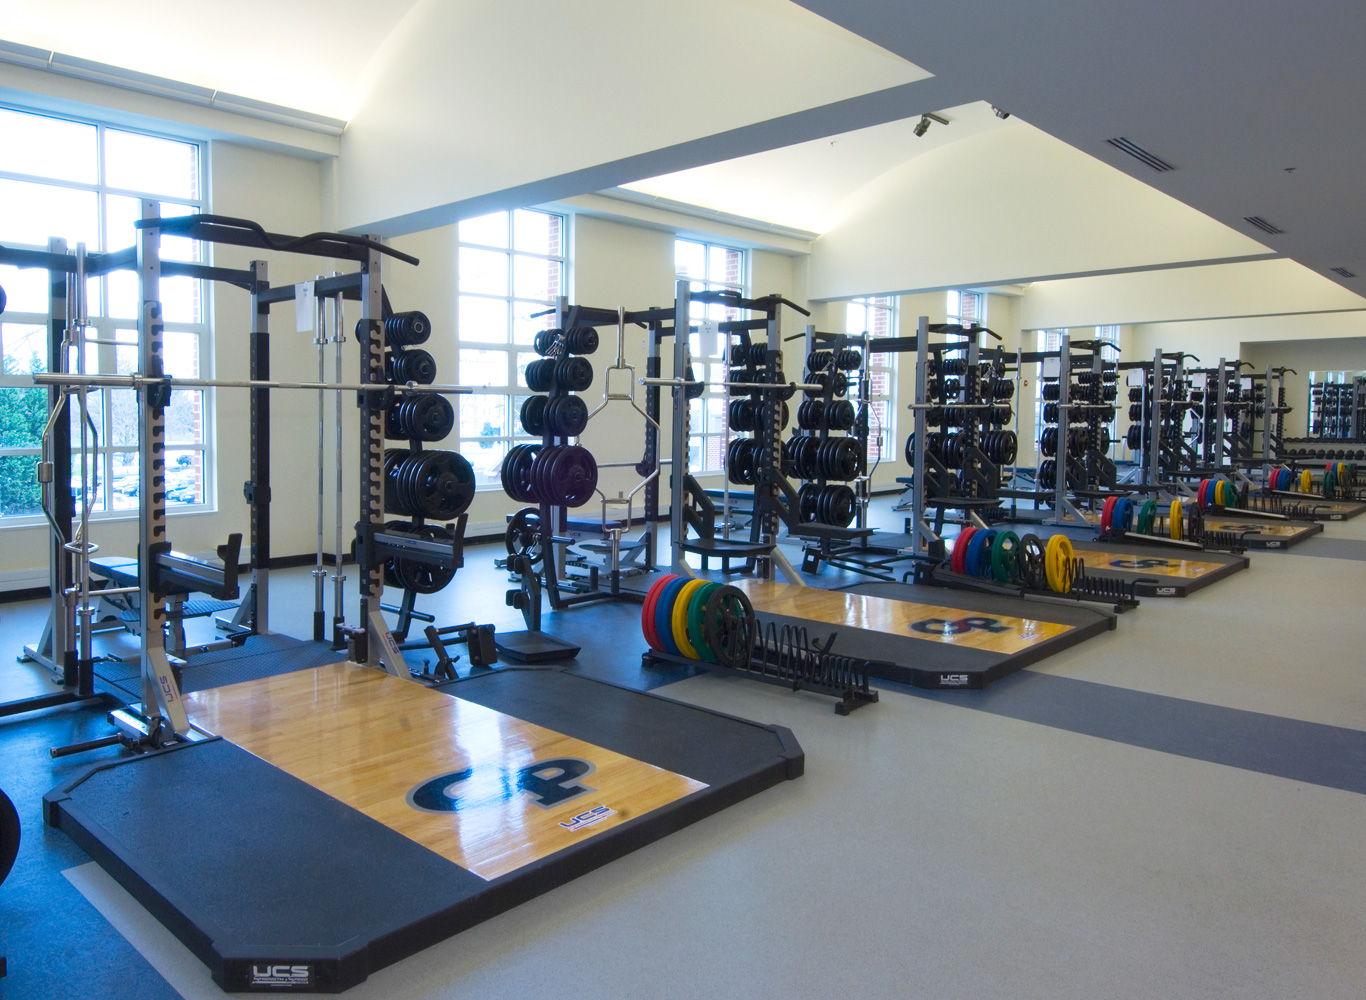 Georgetown Preparatory School - Leisure Fitness Equipment Commercial Solutions